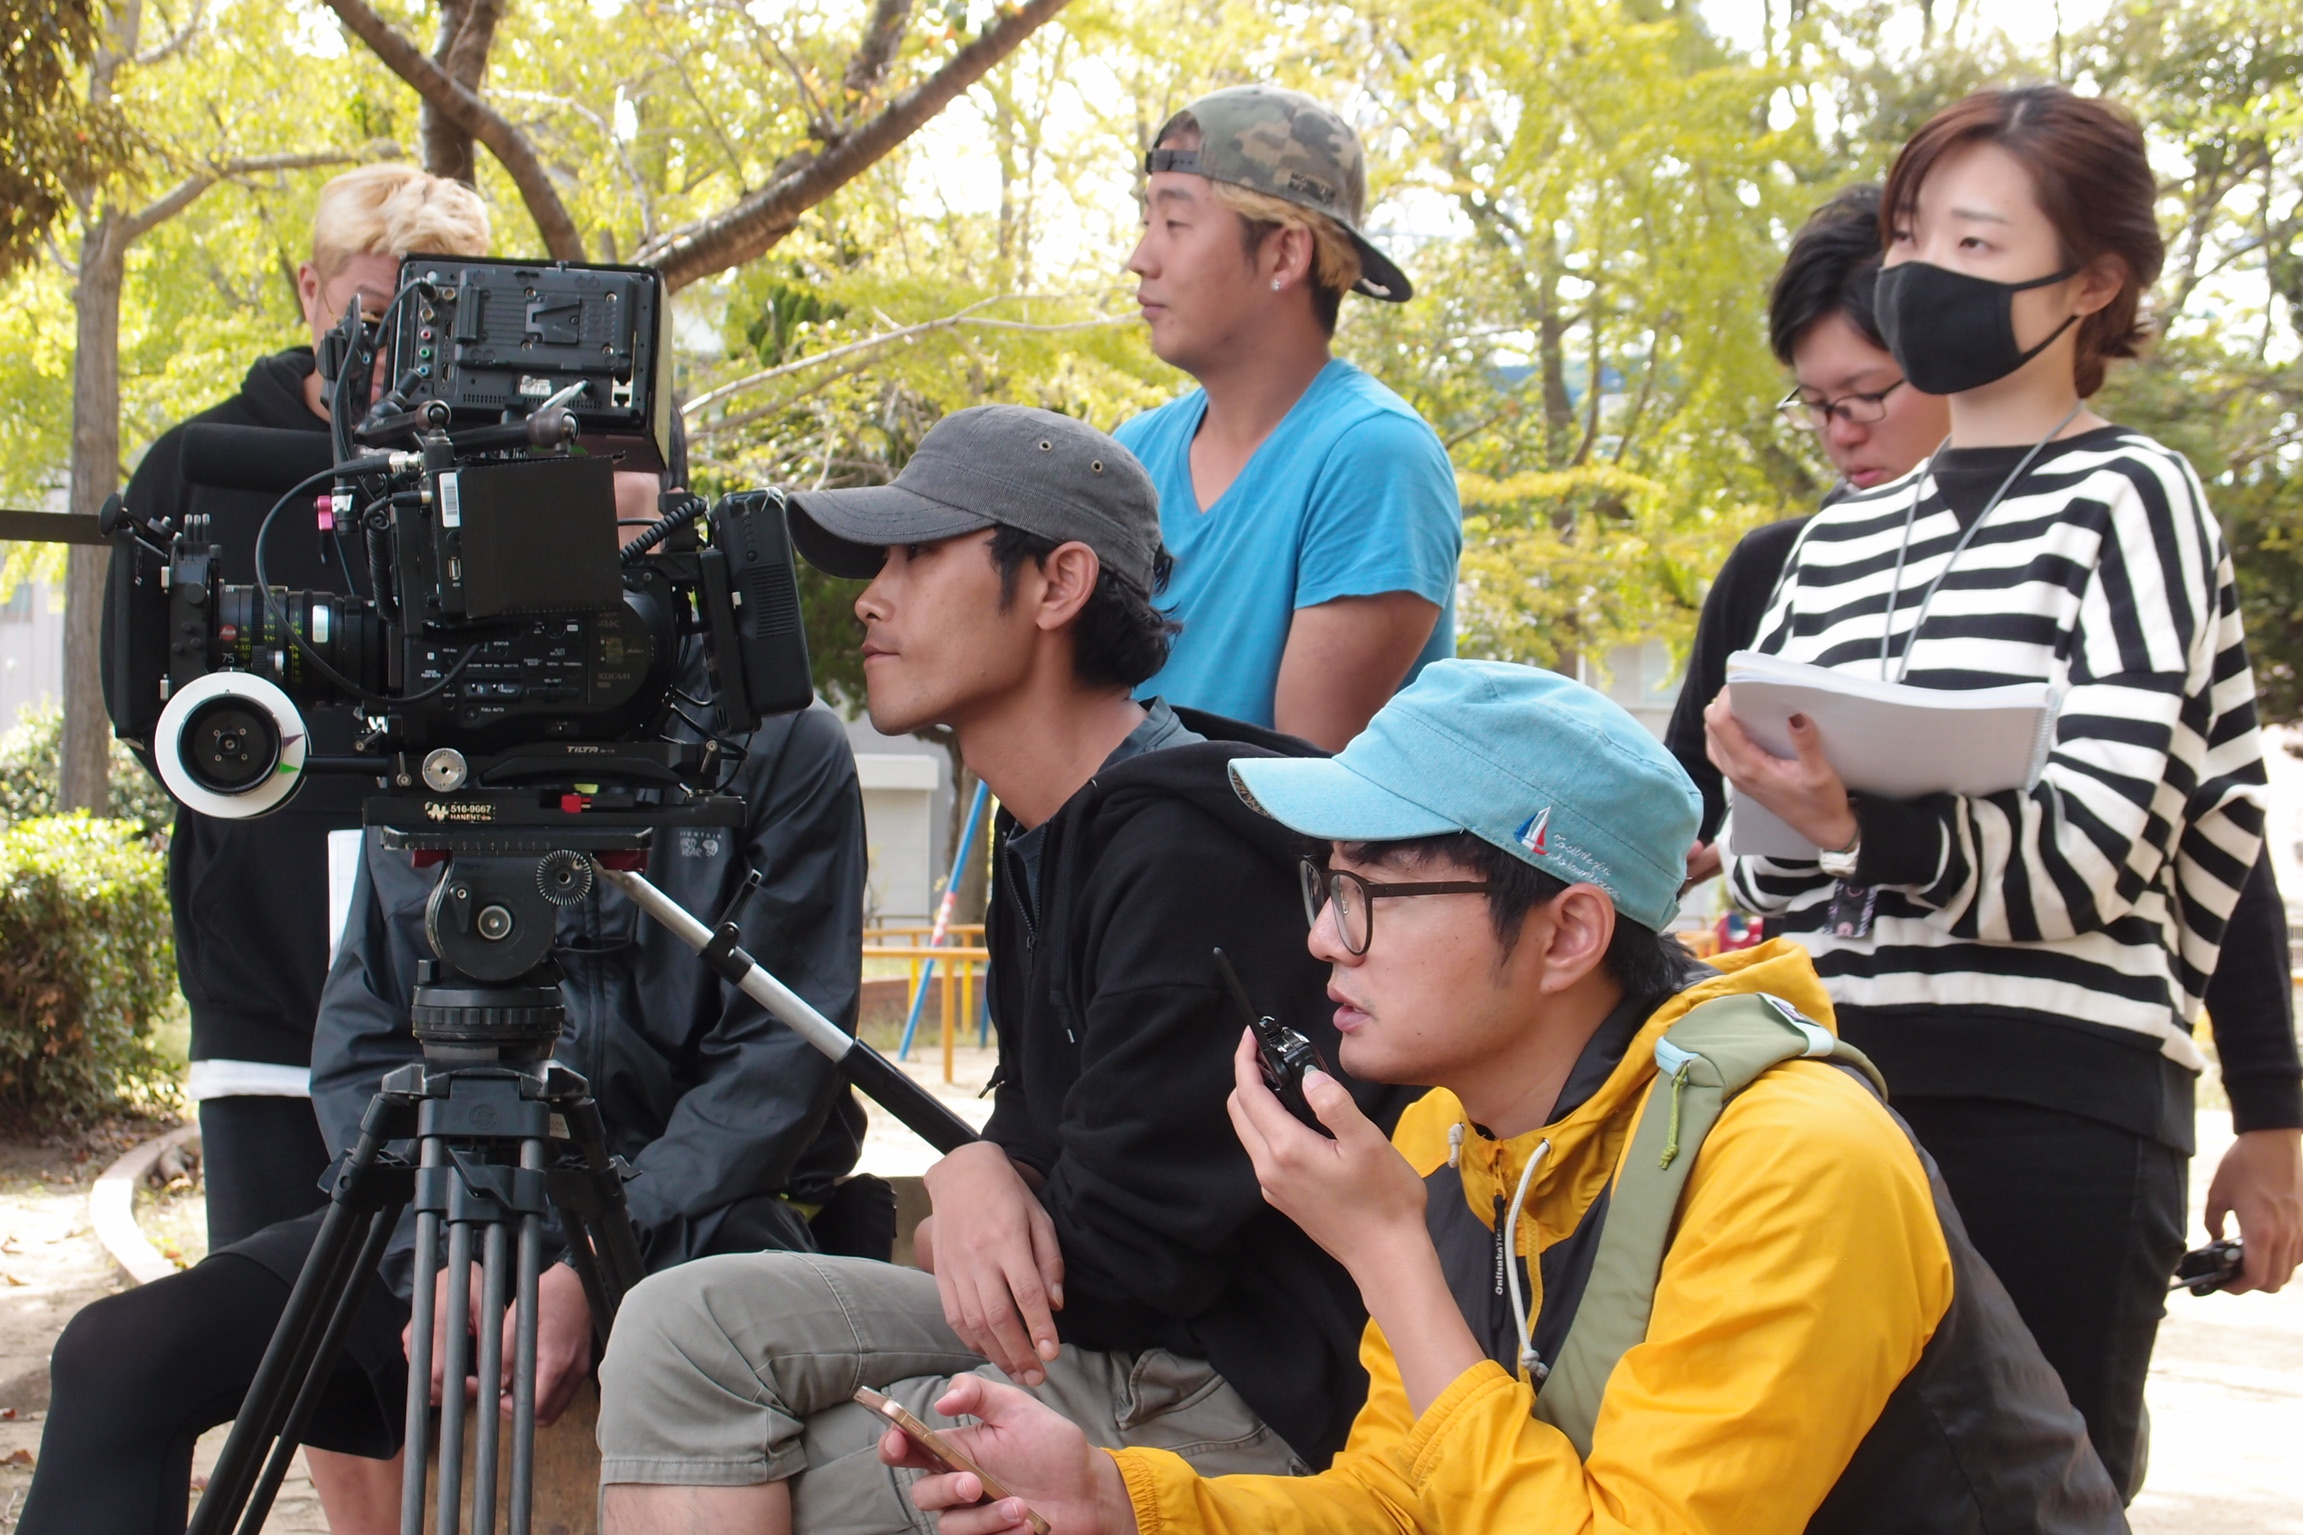 Korean and Japanese film crew working together.